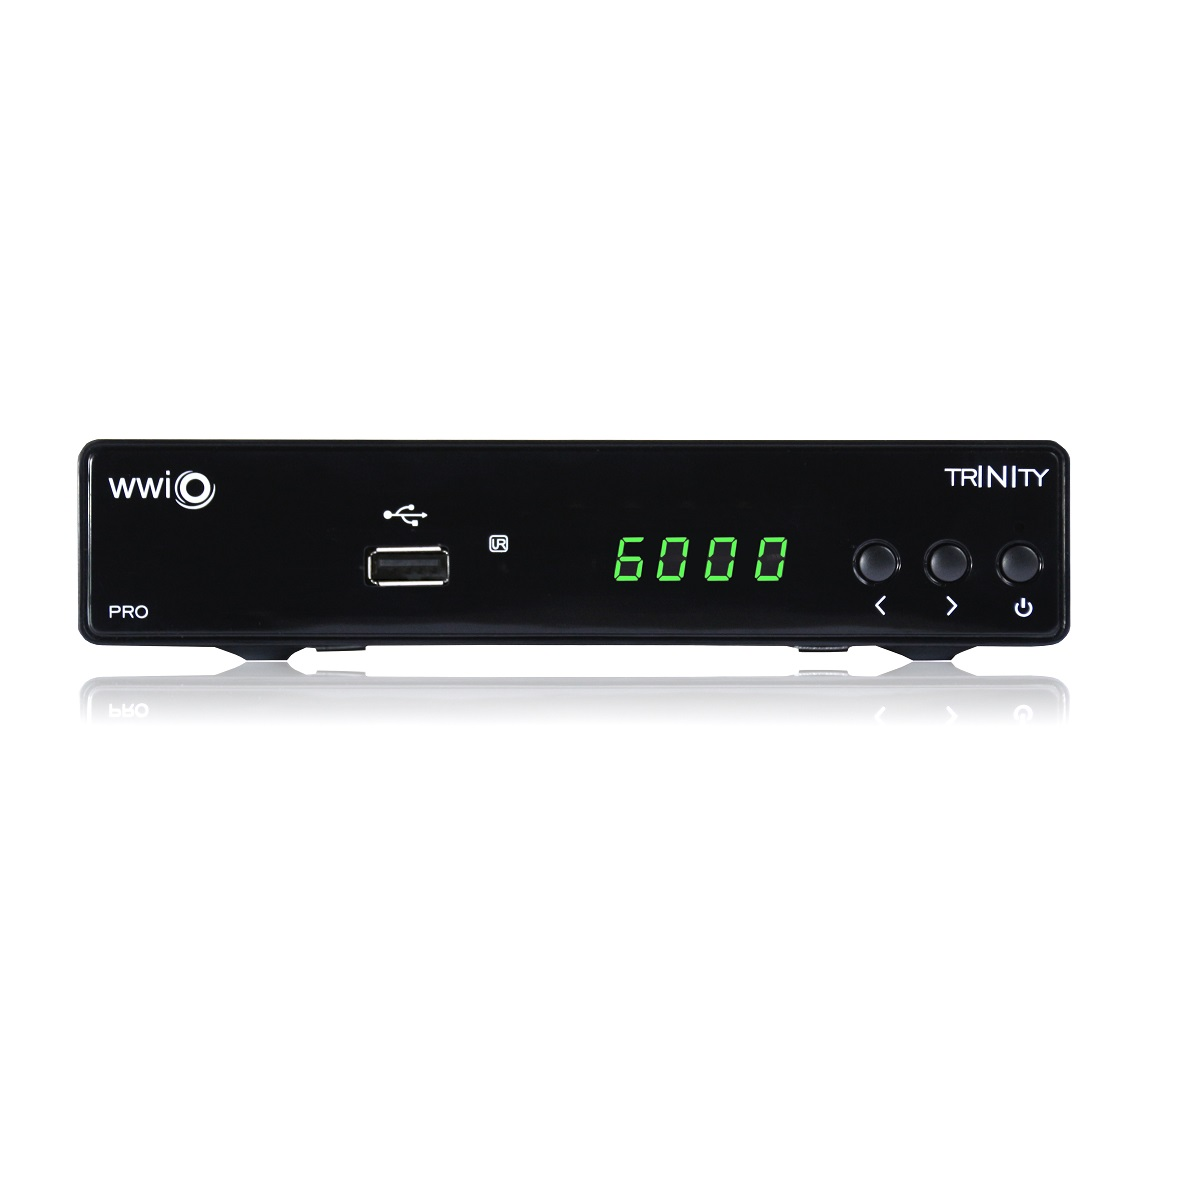 hd sat receiver wwio trinity pro mit pvr usb hdmi lan. Black Bedroom Furniture Sets. Home Design Ideas